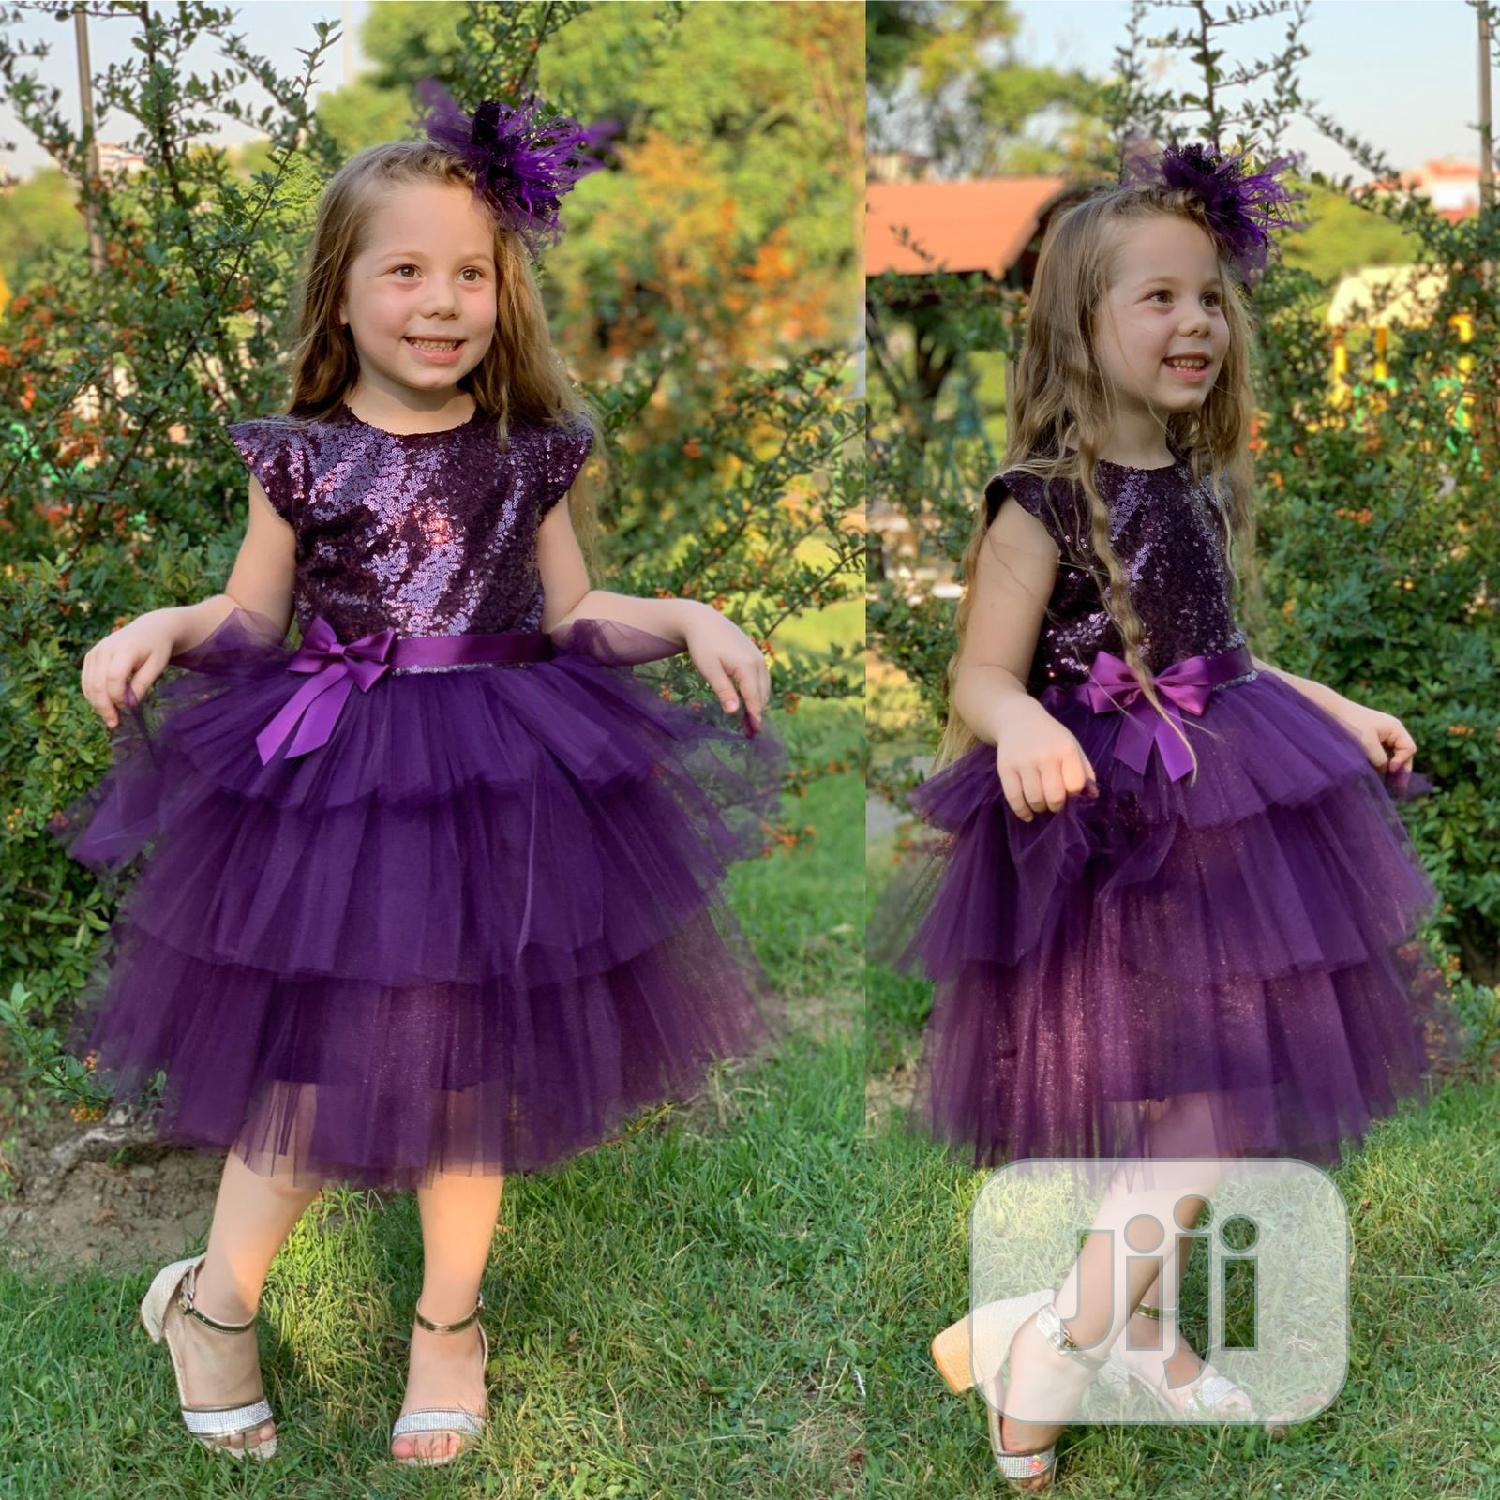 Children Outing Wears | Children's Clothing for sale in Ikeja, Lagos State, Nigeria